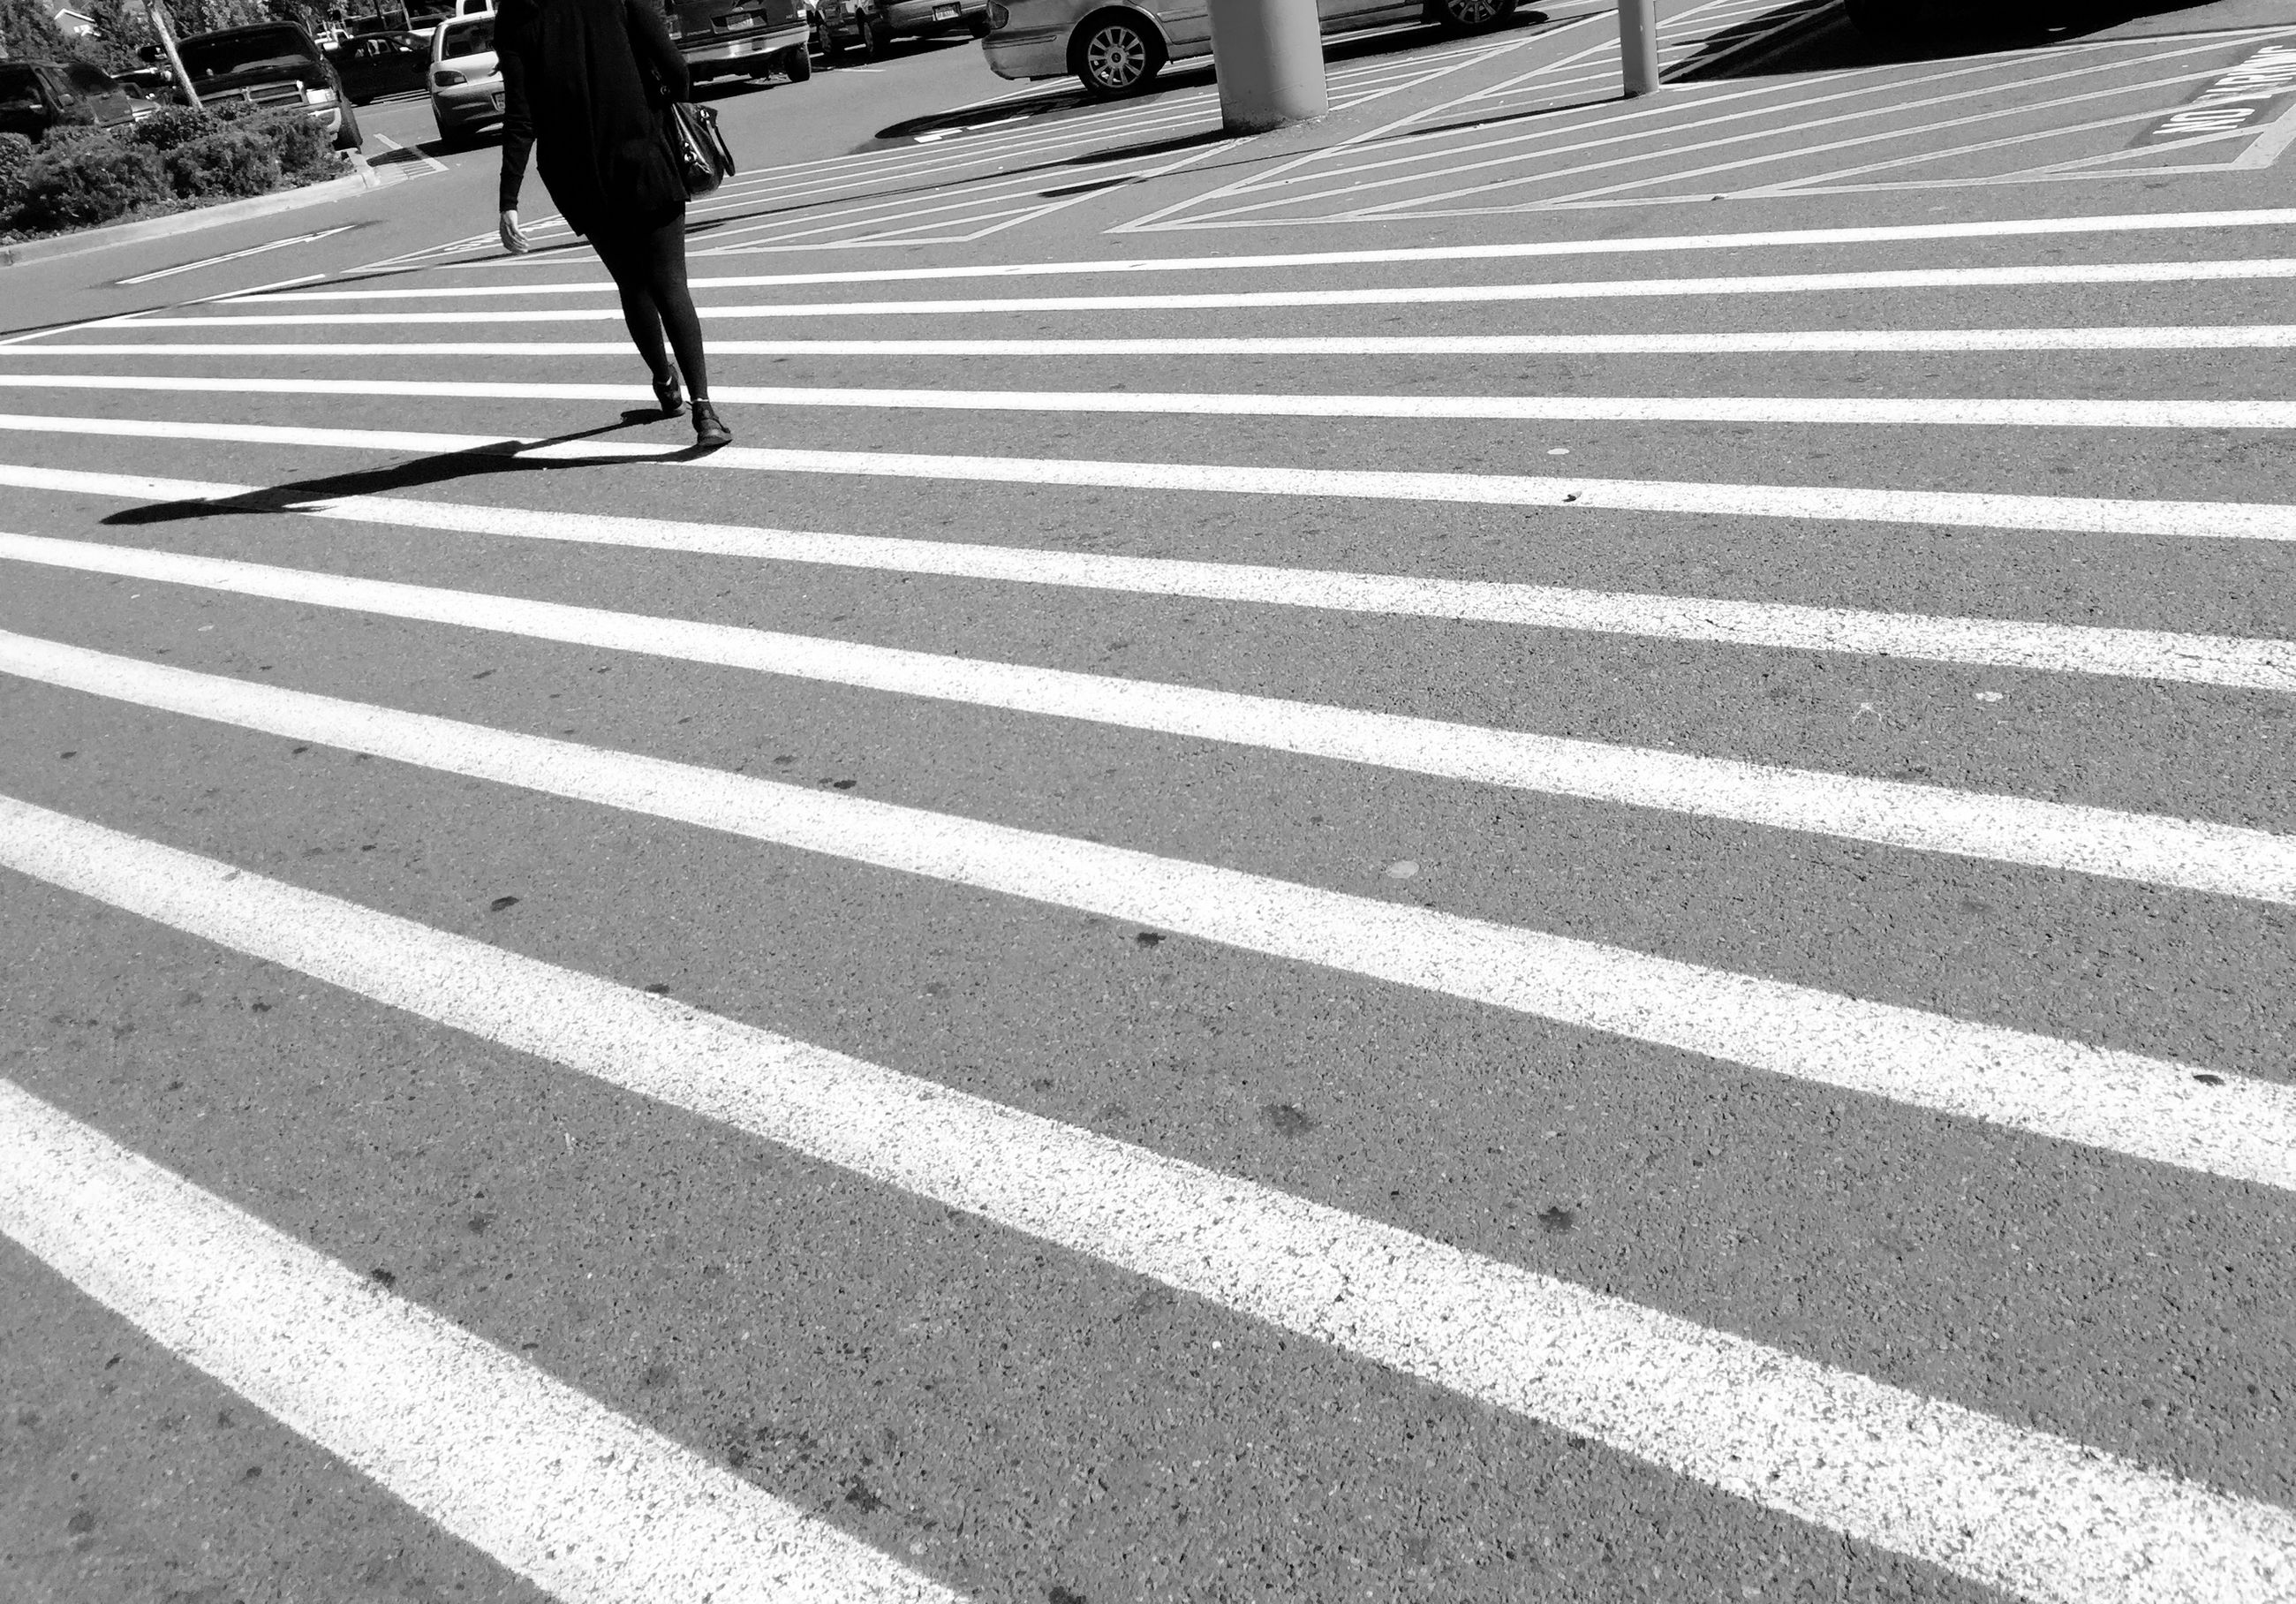 road marking, street, road, asphalt, transportation, zebra crossing, striped, the way forward, shadow, low section, day, sunlight, high angle view, pattern, outdoors, walking, white color, unrecognizable person